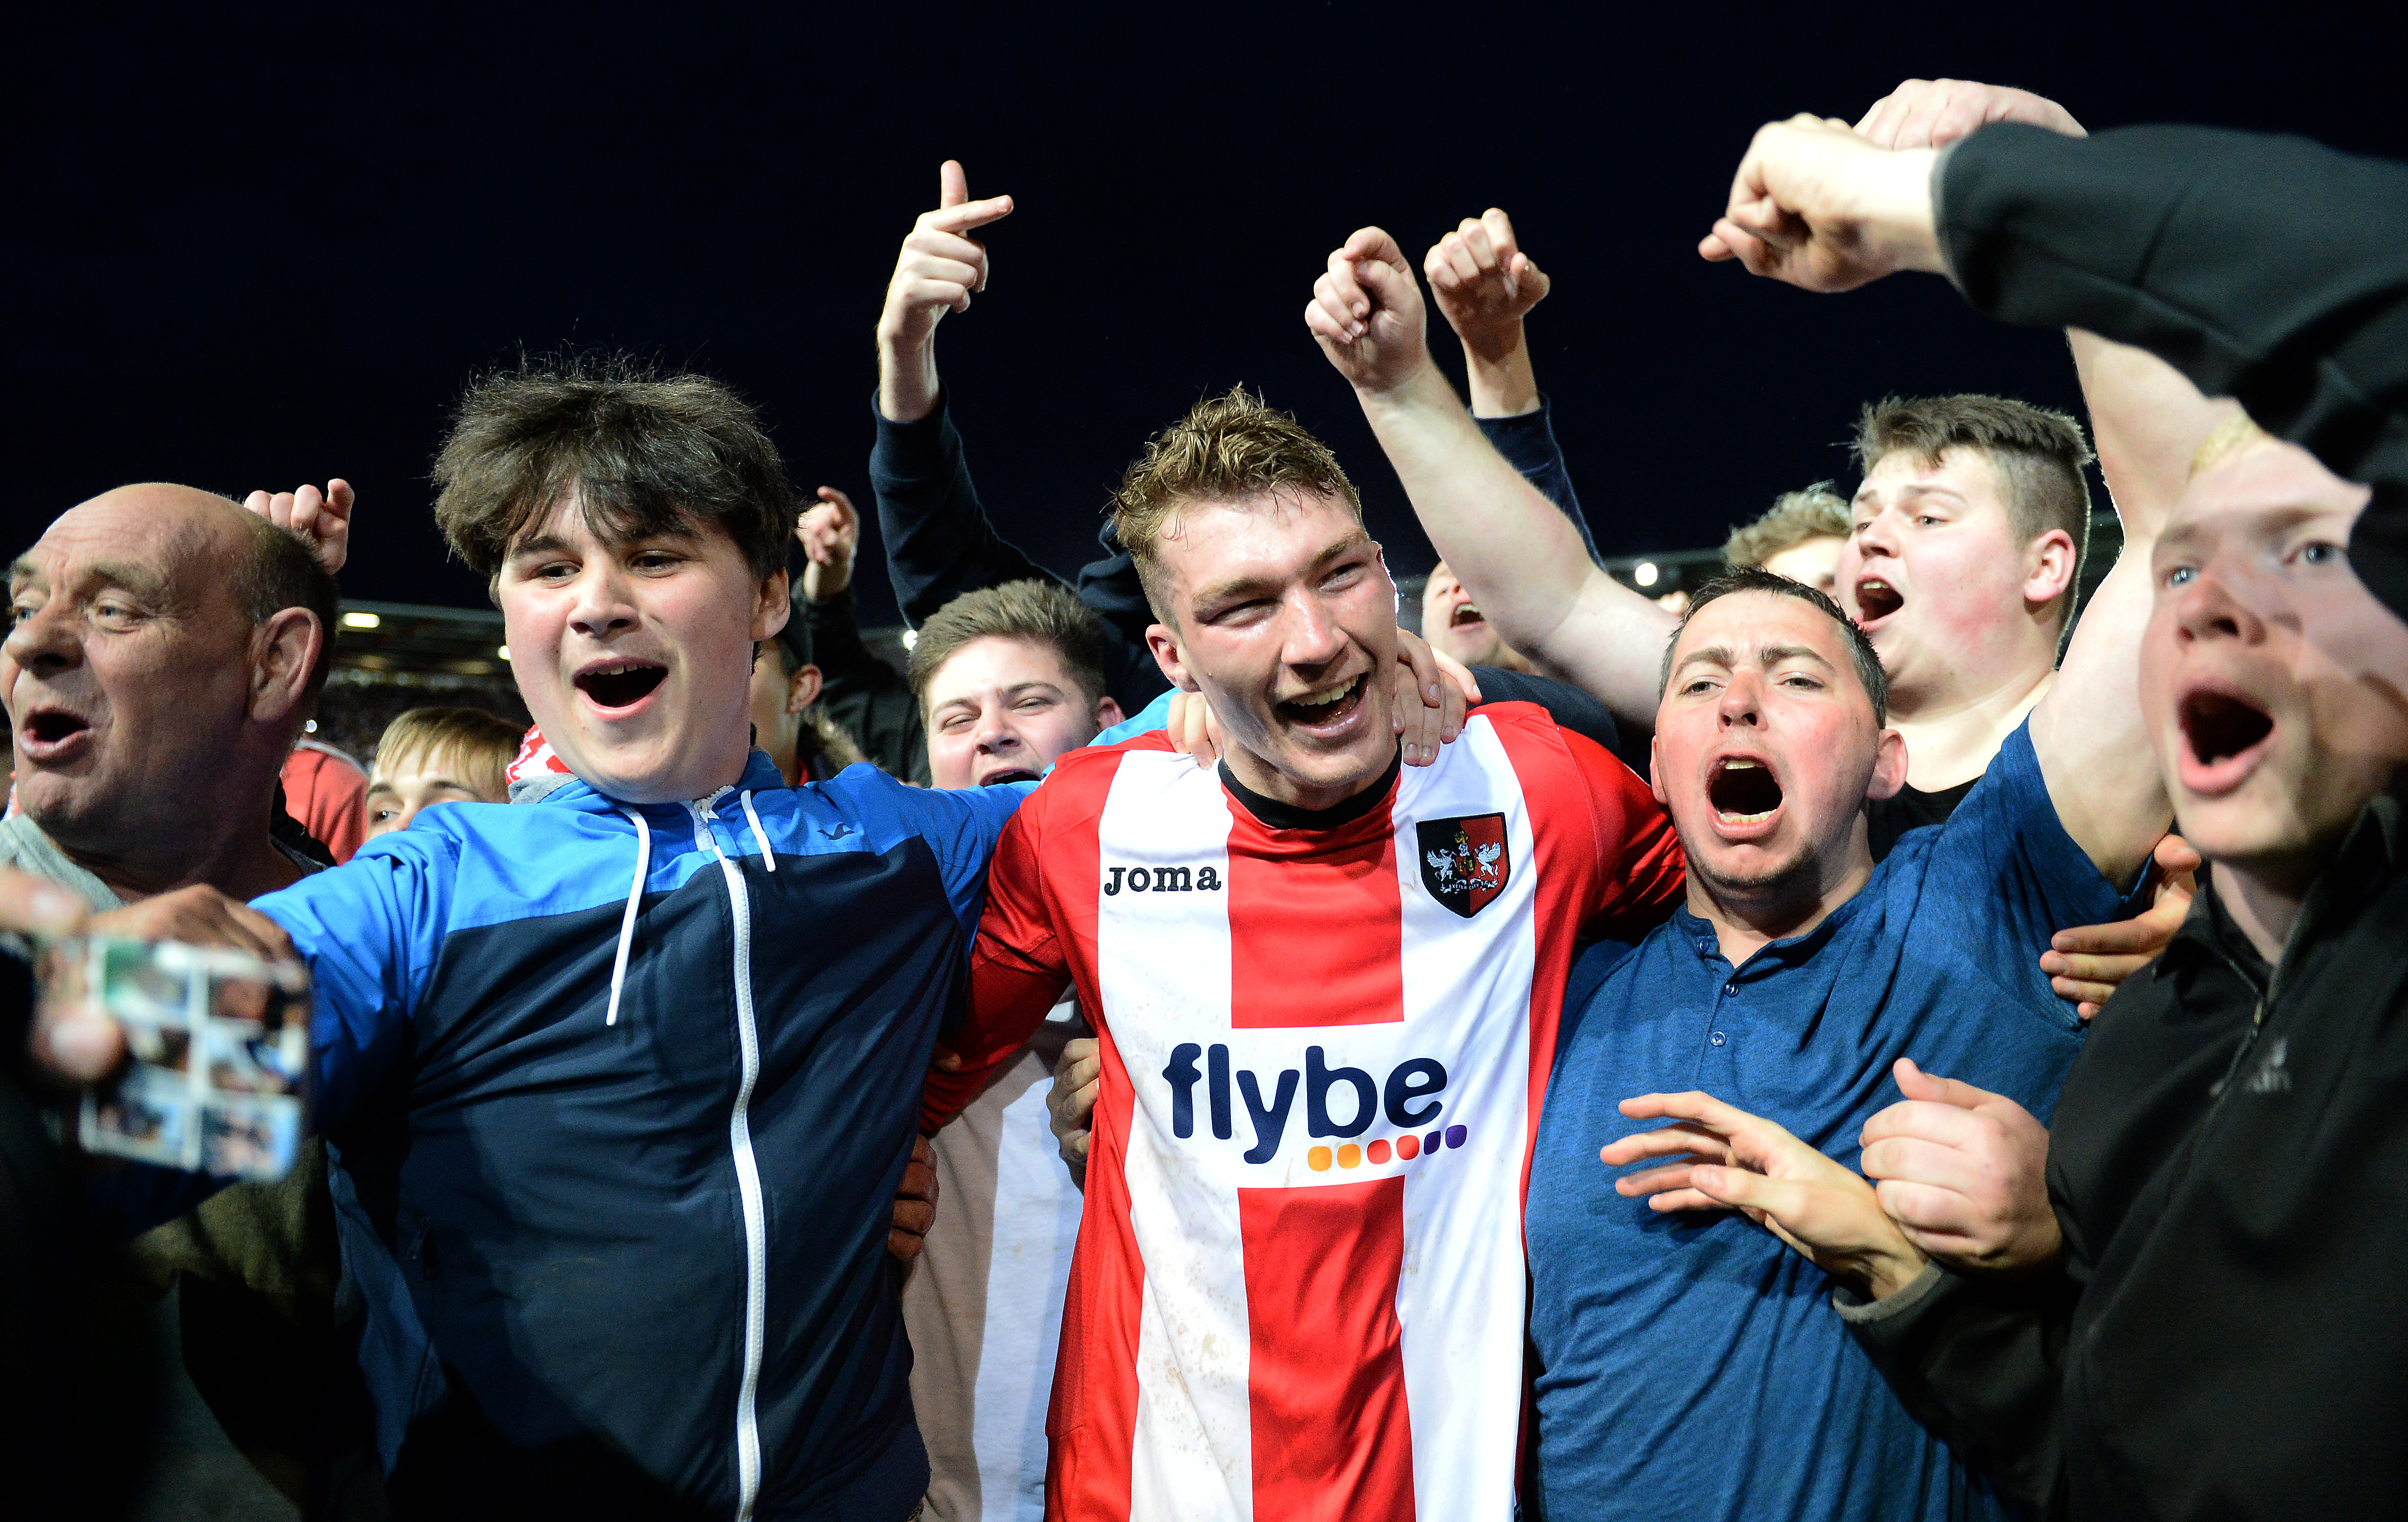 Exeter City v Carlisle United - Sky Bet League Two Play off Semi Final: Second Leg